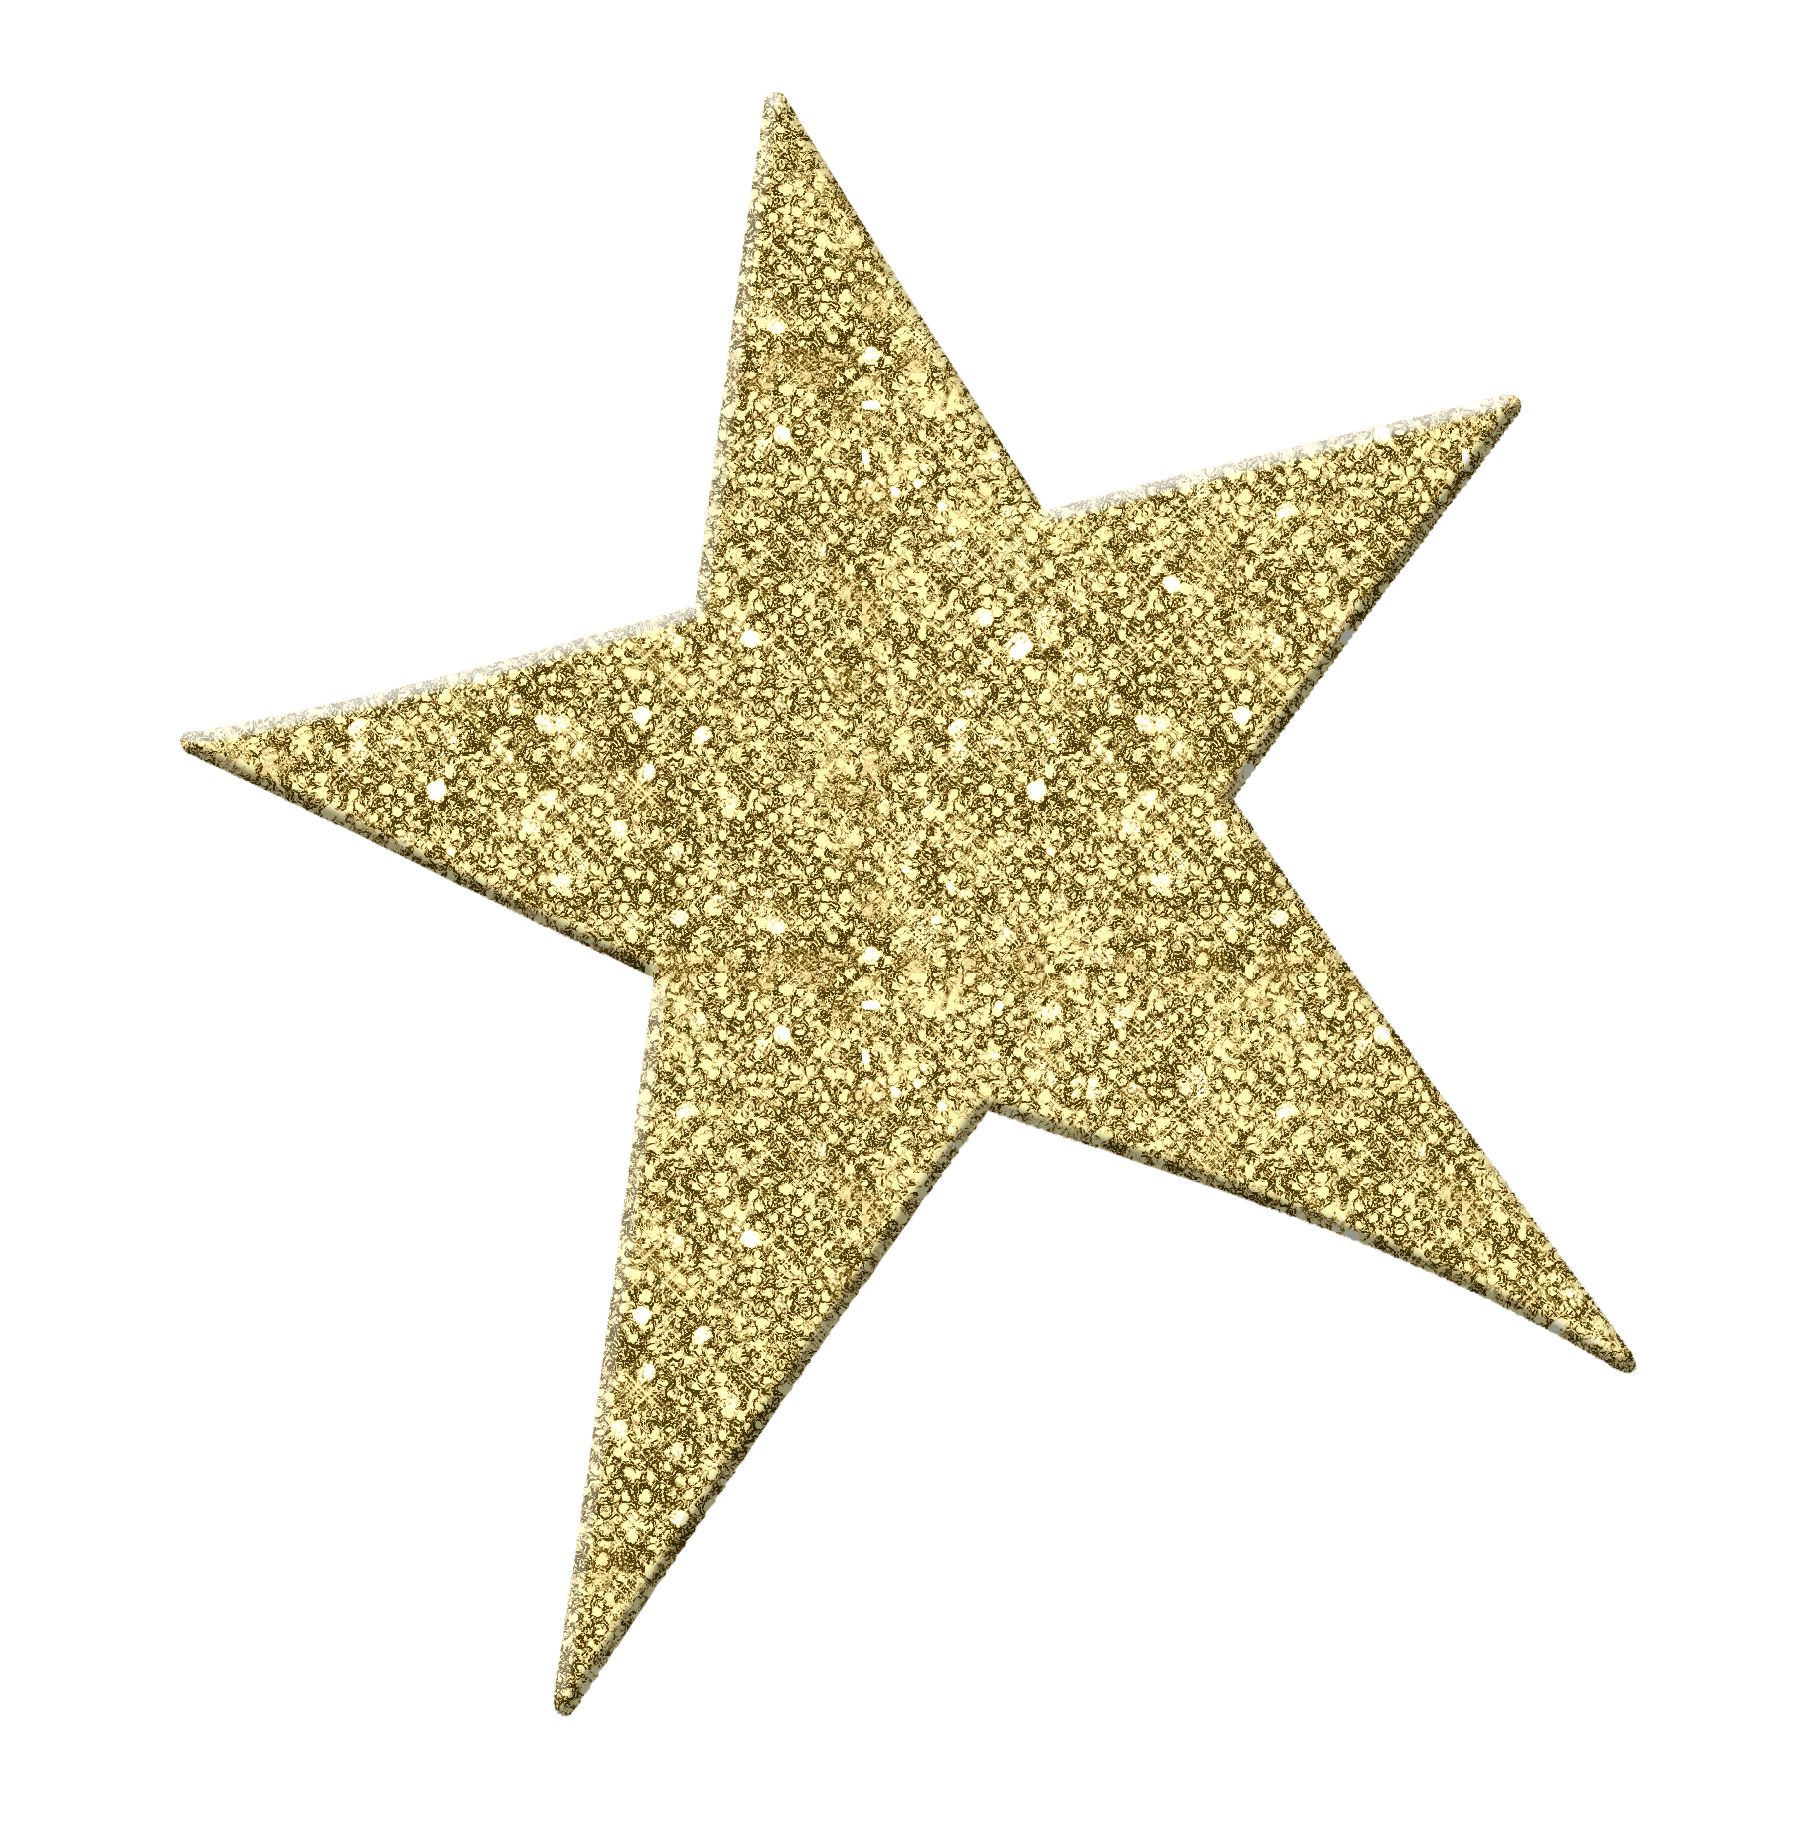 5 clipart object. Stars voting transparent png